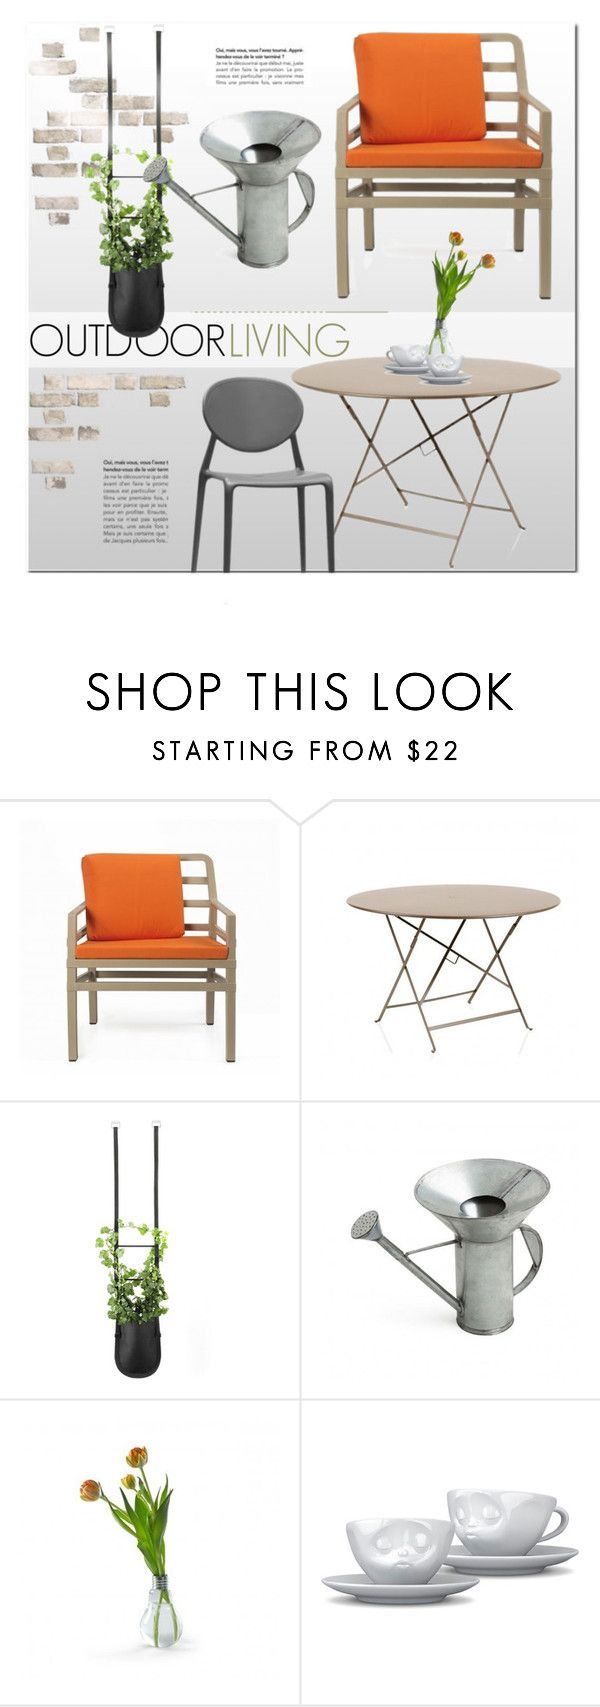 """Outdoors"" by lovethesign-eu ❤ liked on Polyvore featuring interior, interiors, interior design, home, home decor, interior decorating, Authentics, Internoitaliano, Serax and Home"